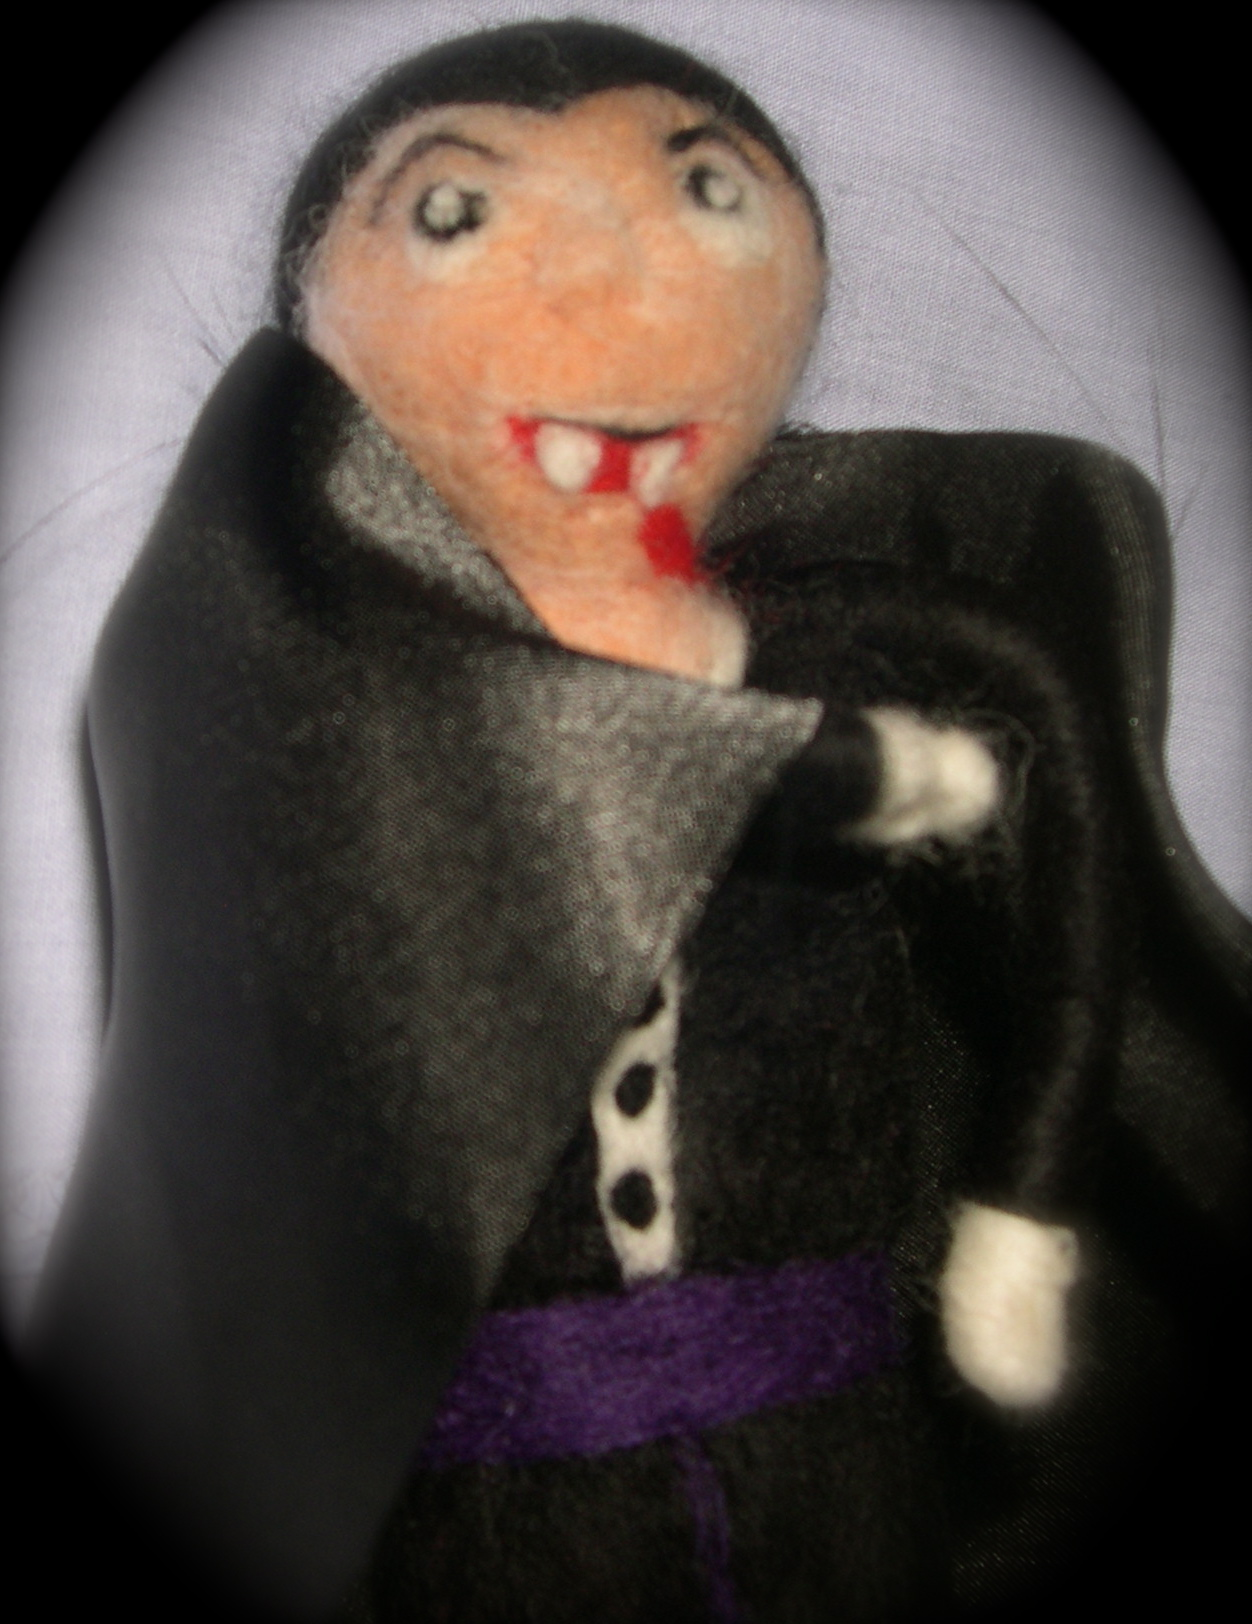 The Count close up